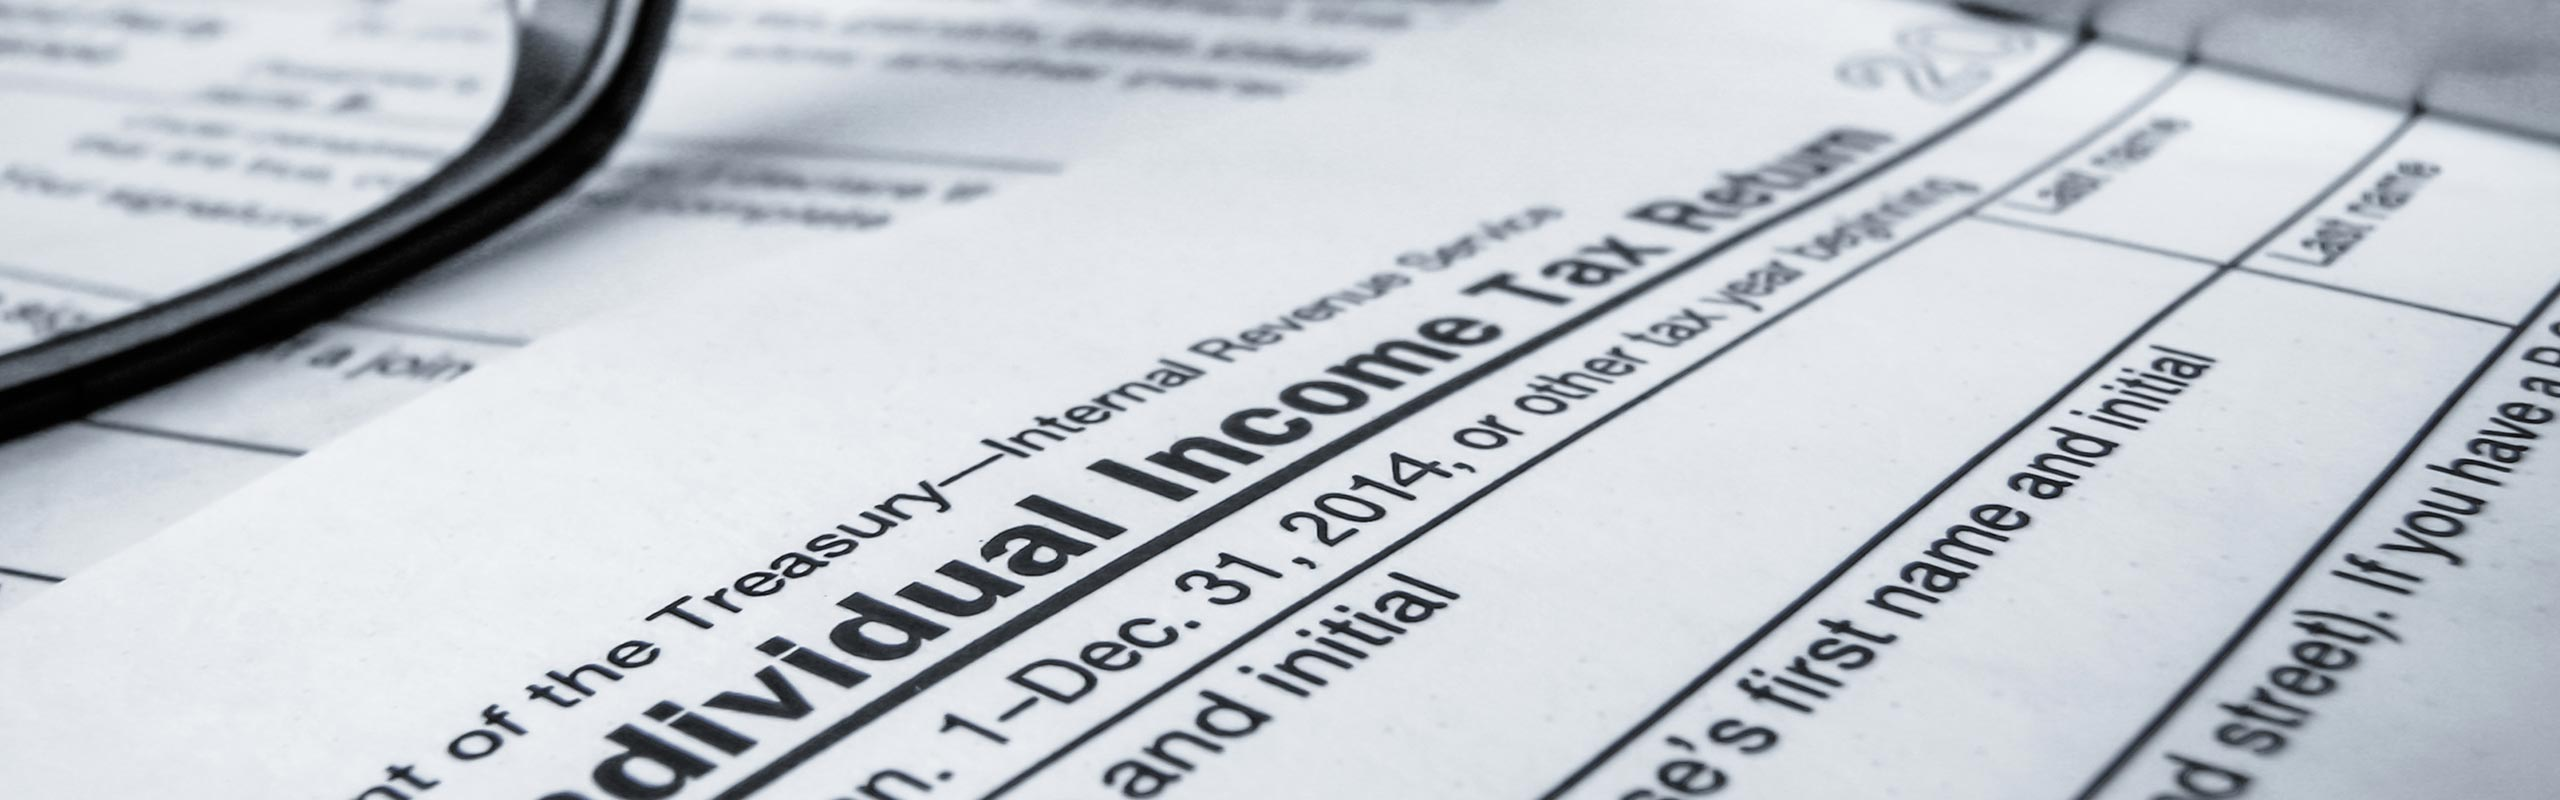 Kansas City individual income tax return